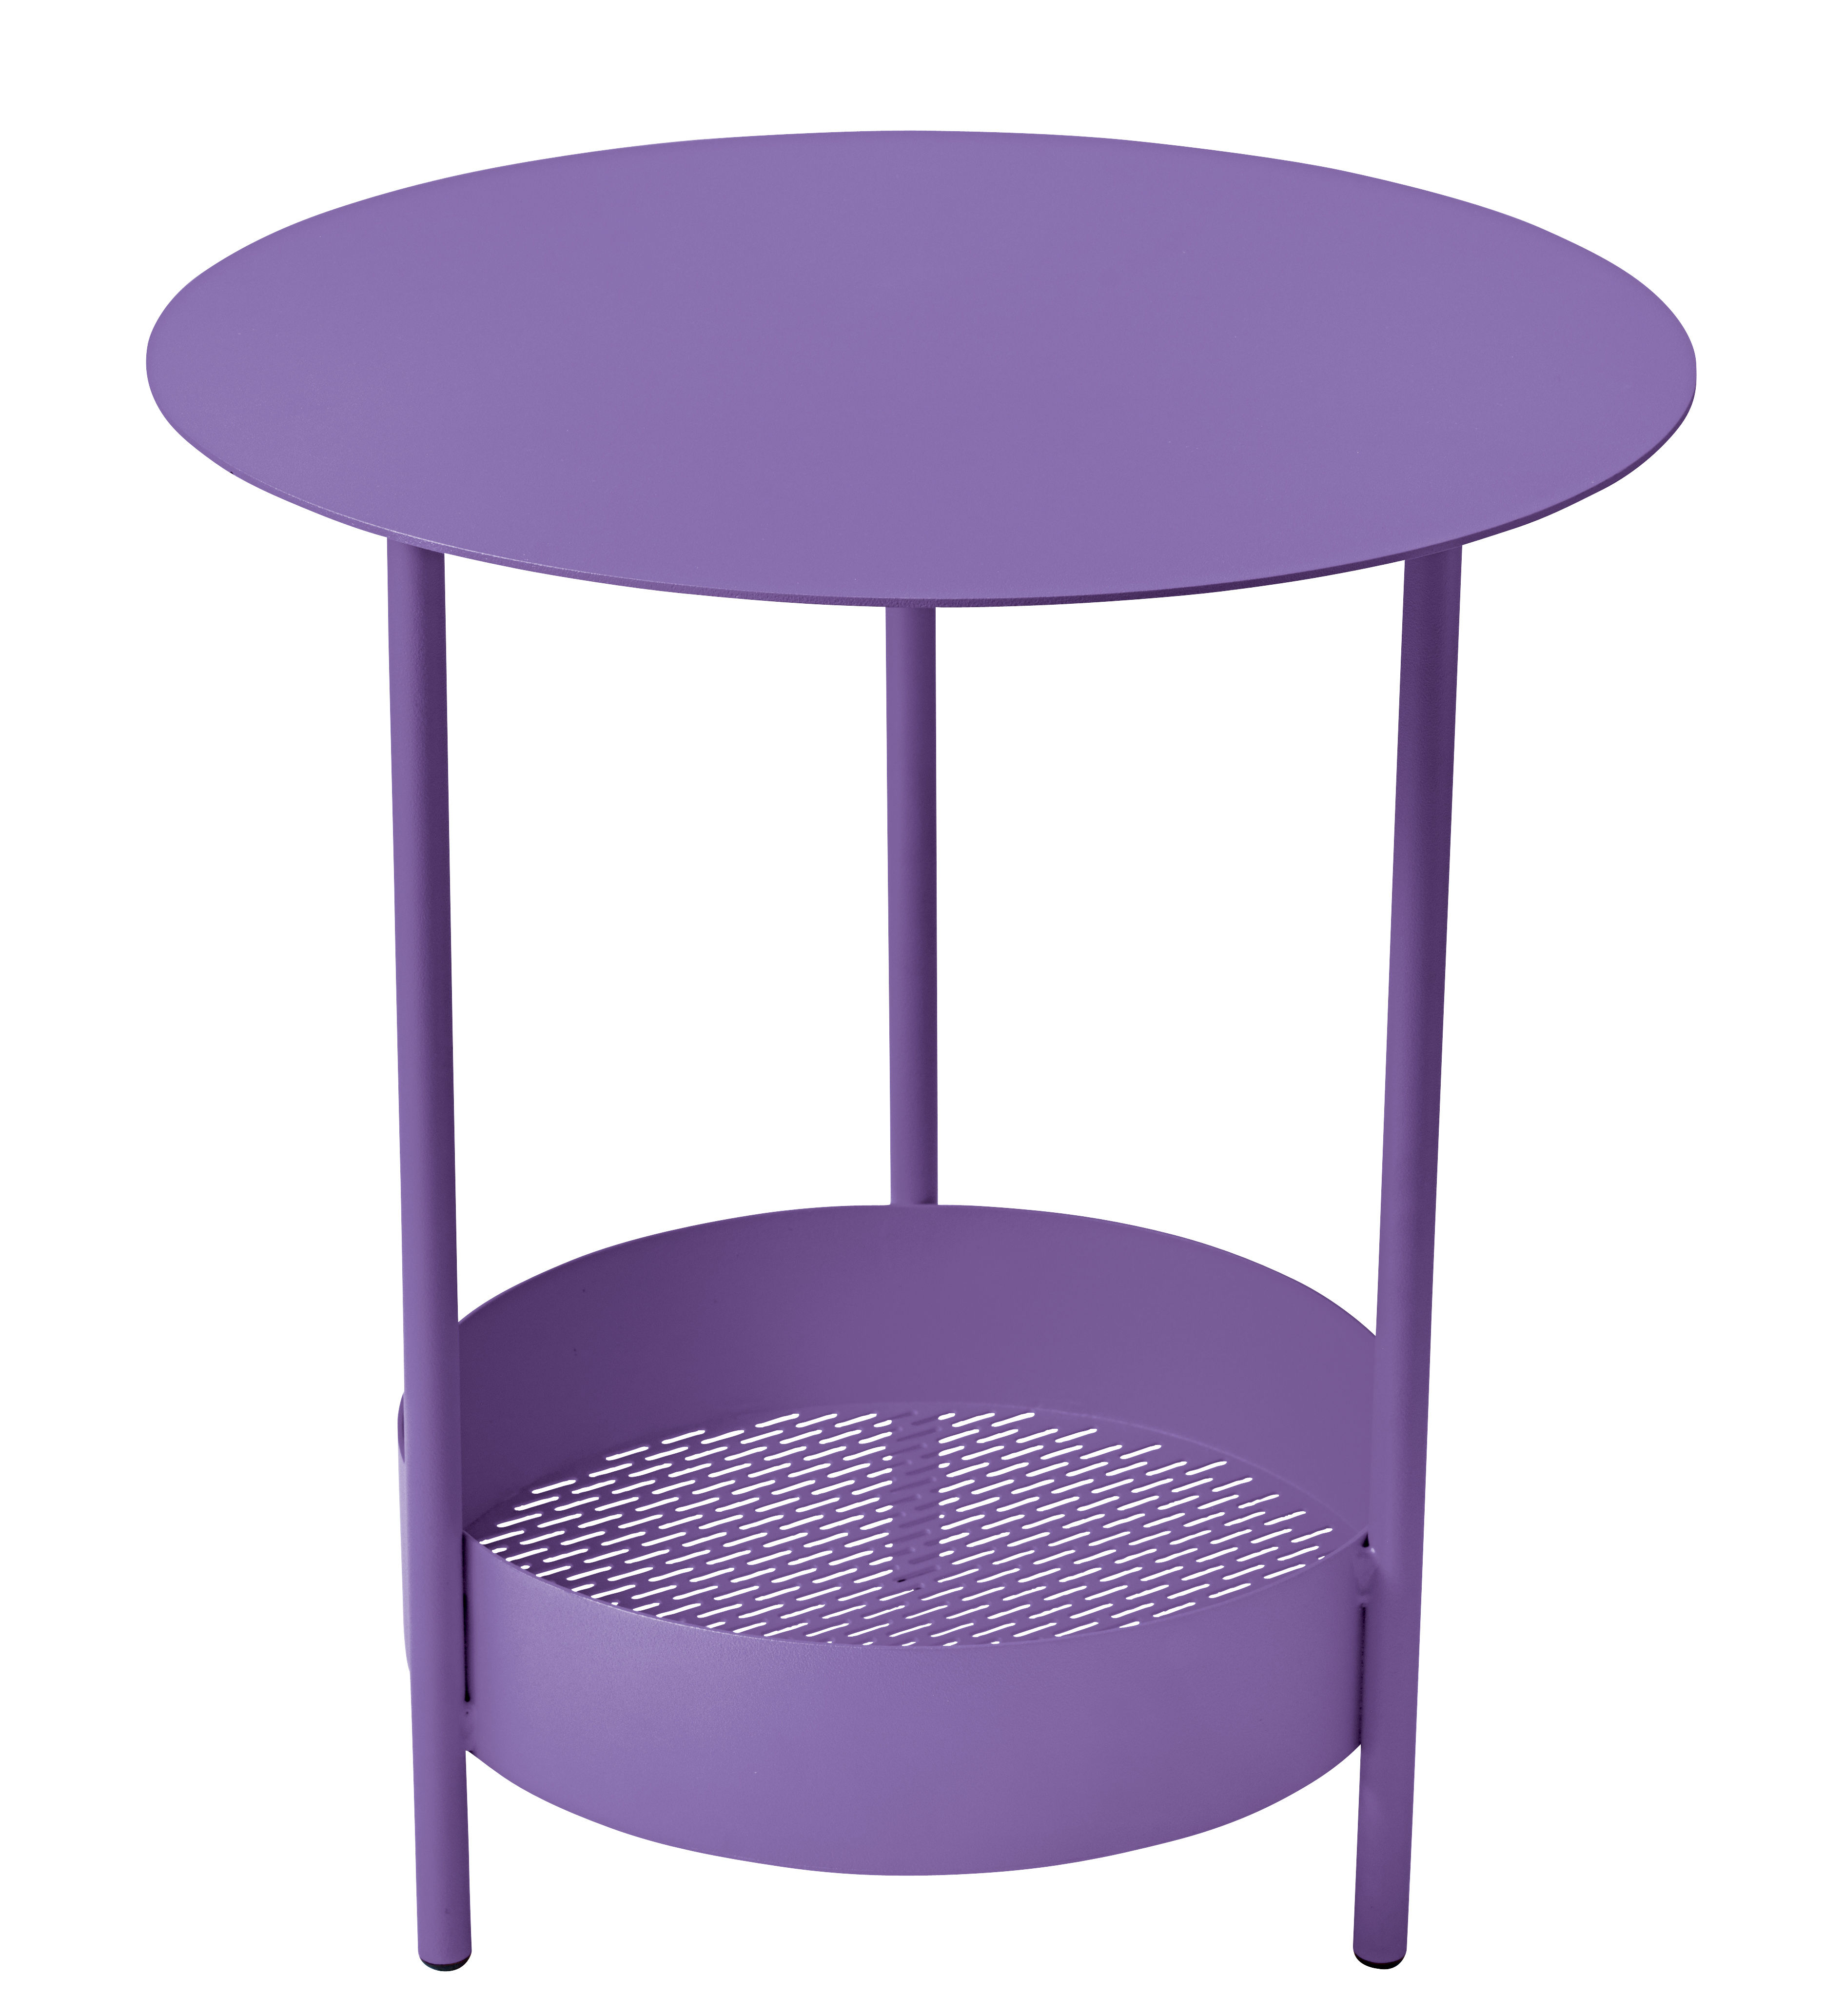 Furniture - Coffee Tables - Salsa Small table - Ø 50 x H 50 cm by Fermob - Aubergine - Steel